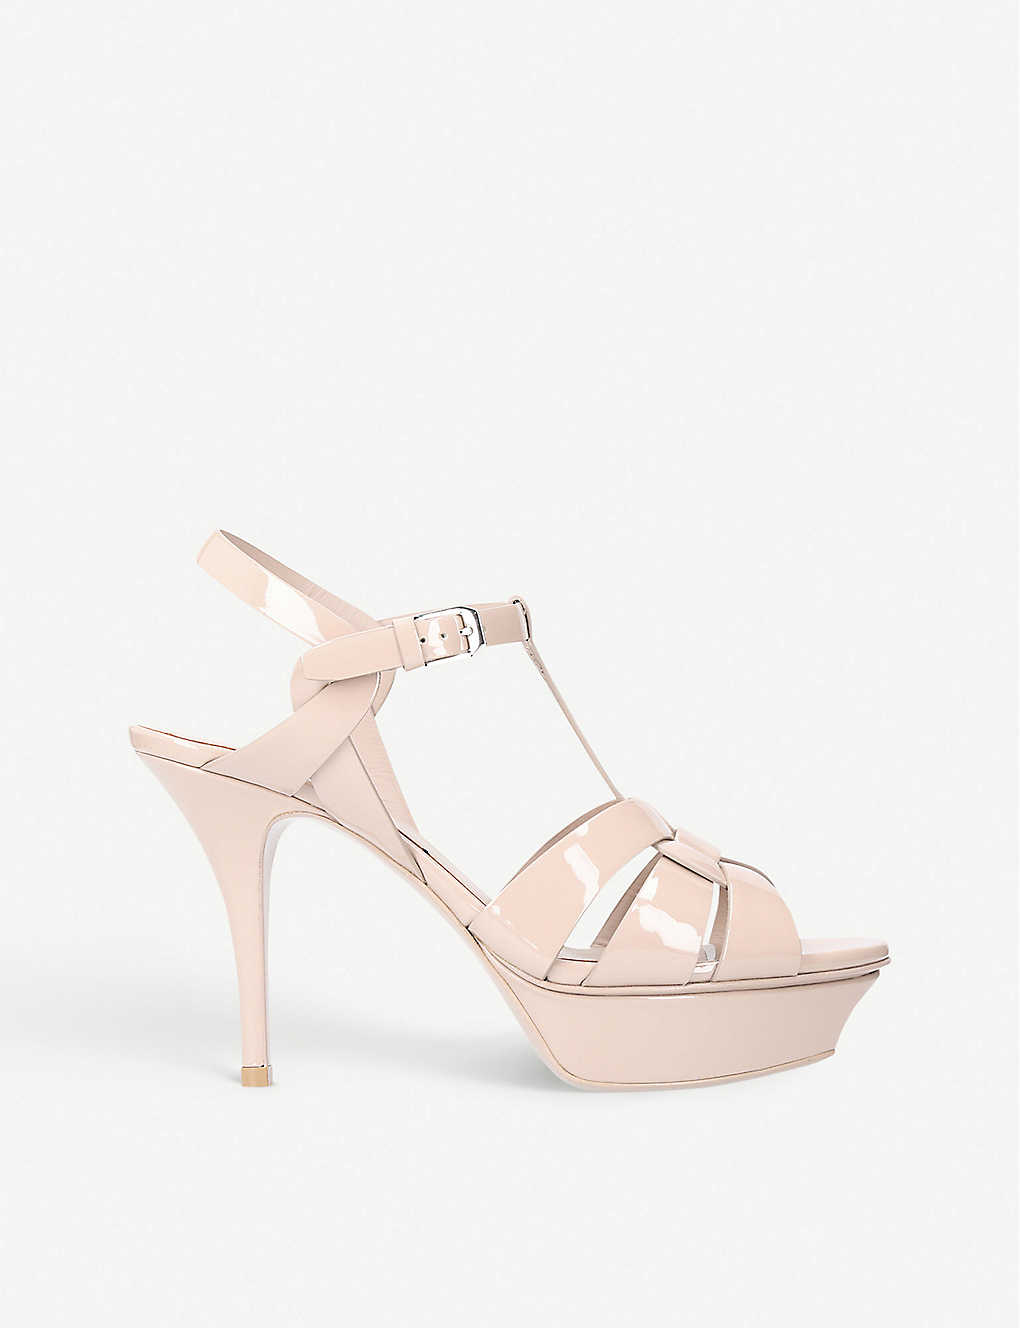 9e7dcd98d9e SAINT LAURENT - Tribute 75 patent leather sandals | Selfridges.com